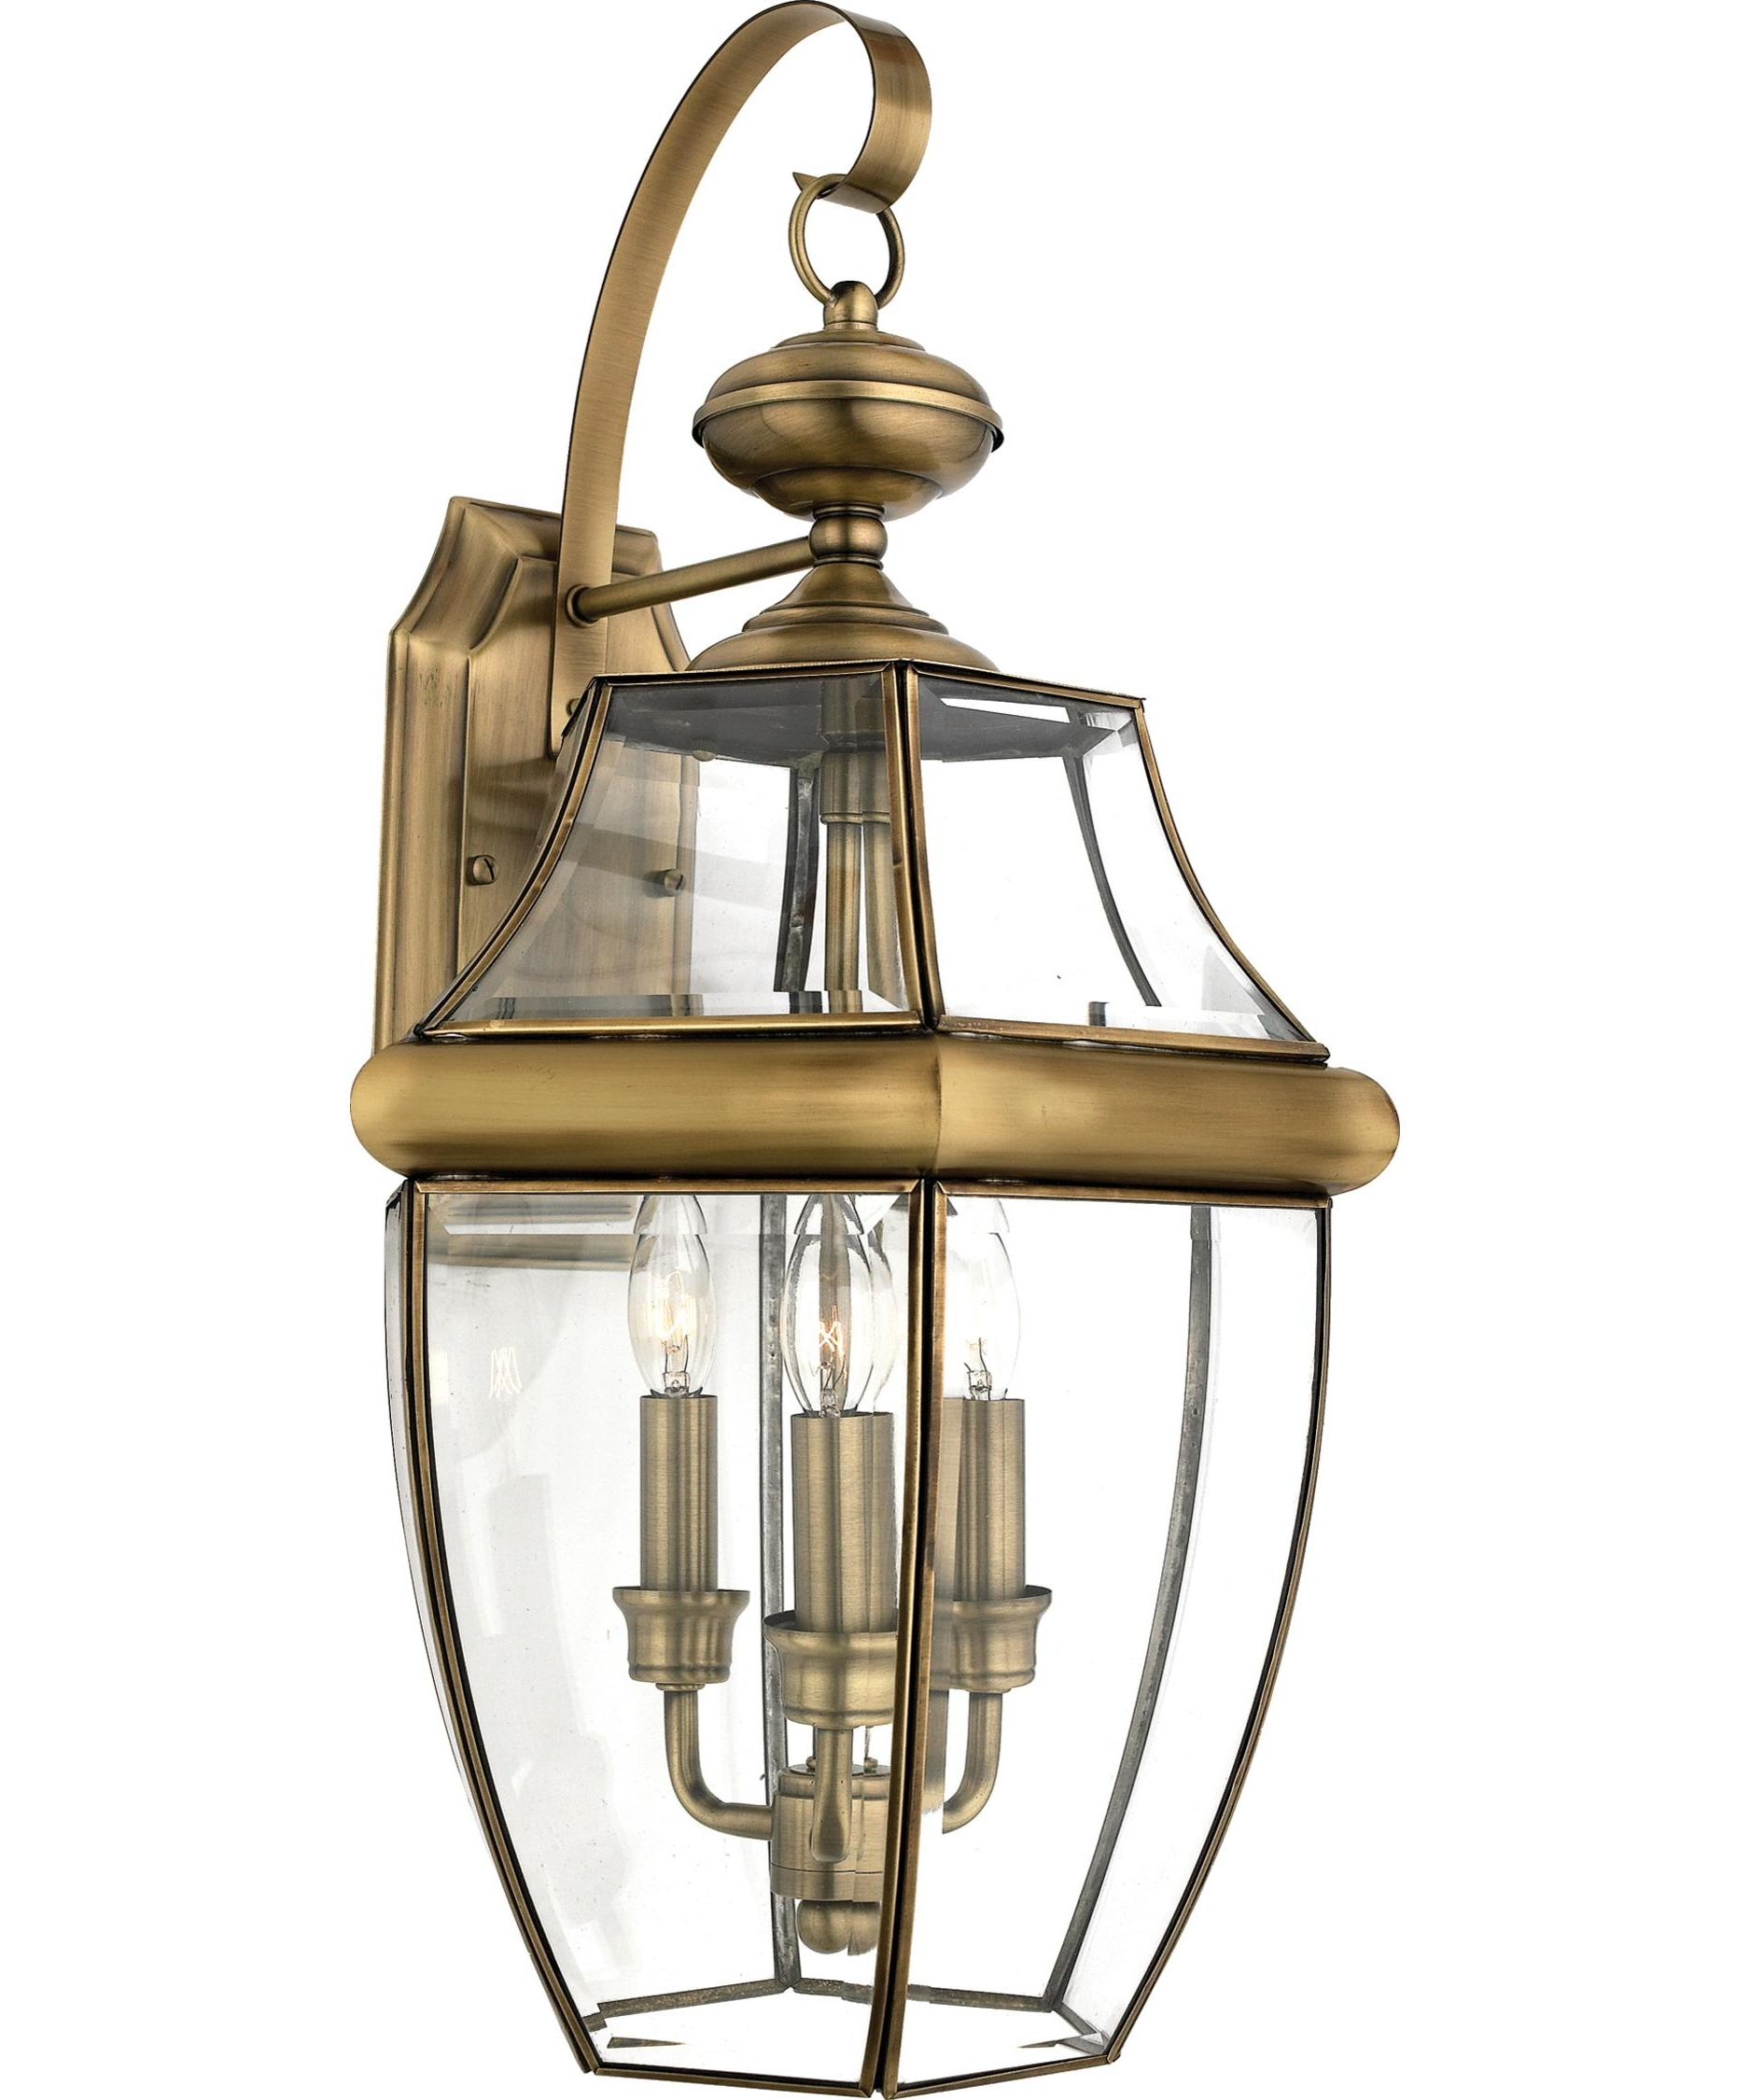 Quoizel Outdoor Hanging Lights Pertaining To Favorite Quoizel Ny8318 Newbury 13 Inch Wide 3 Light Outdoor Wall Light (View 18 of 20)